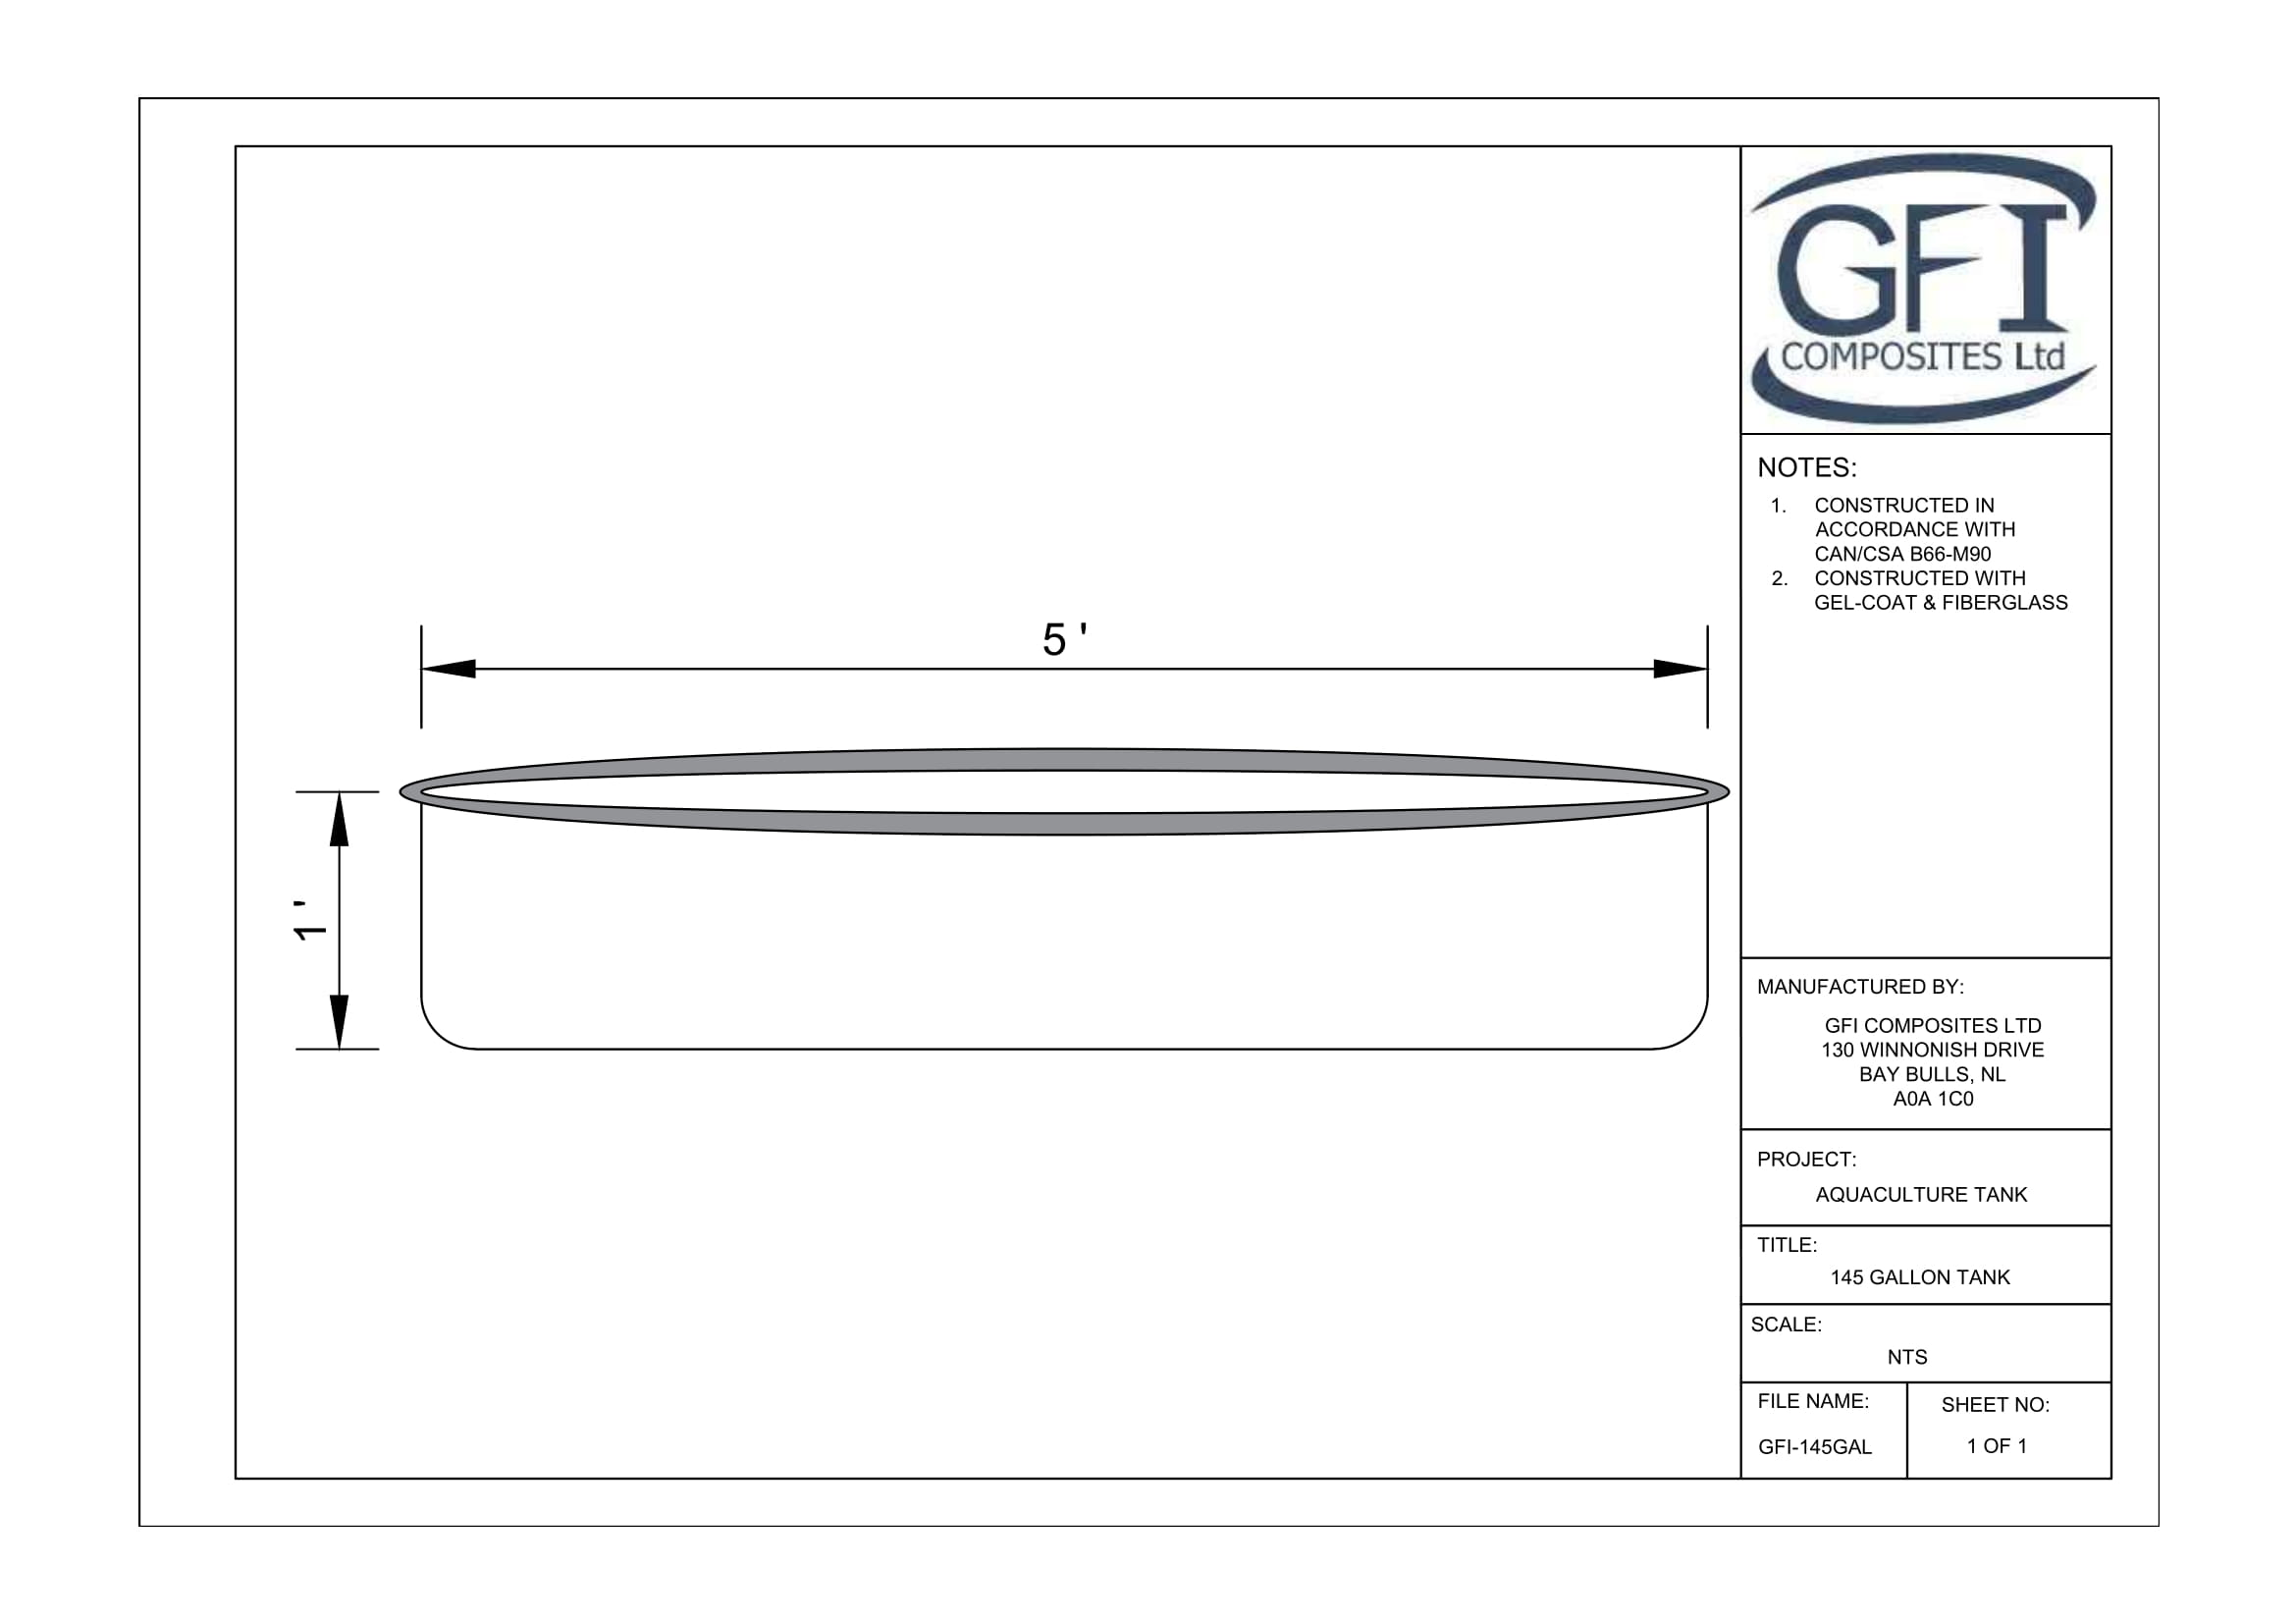 Shop Drawings - GFI Composites